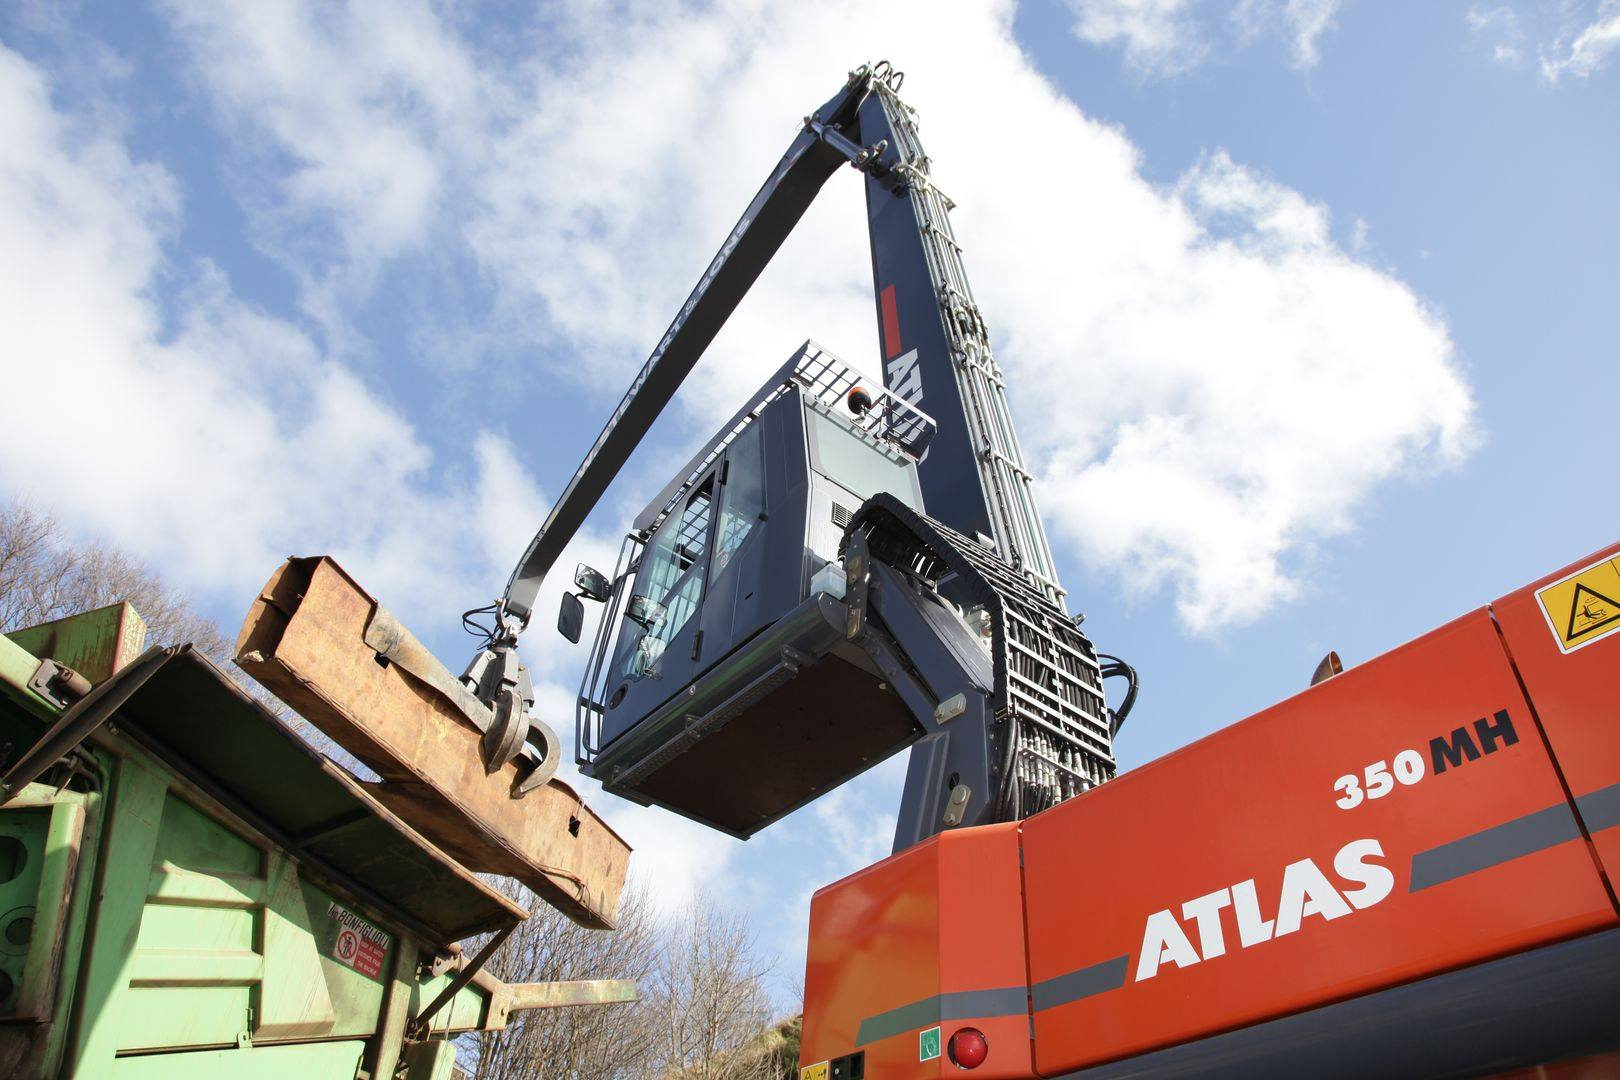 Atlas 350MH material handler with cab raised